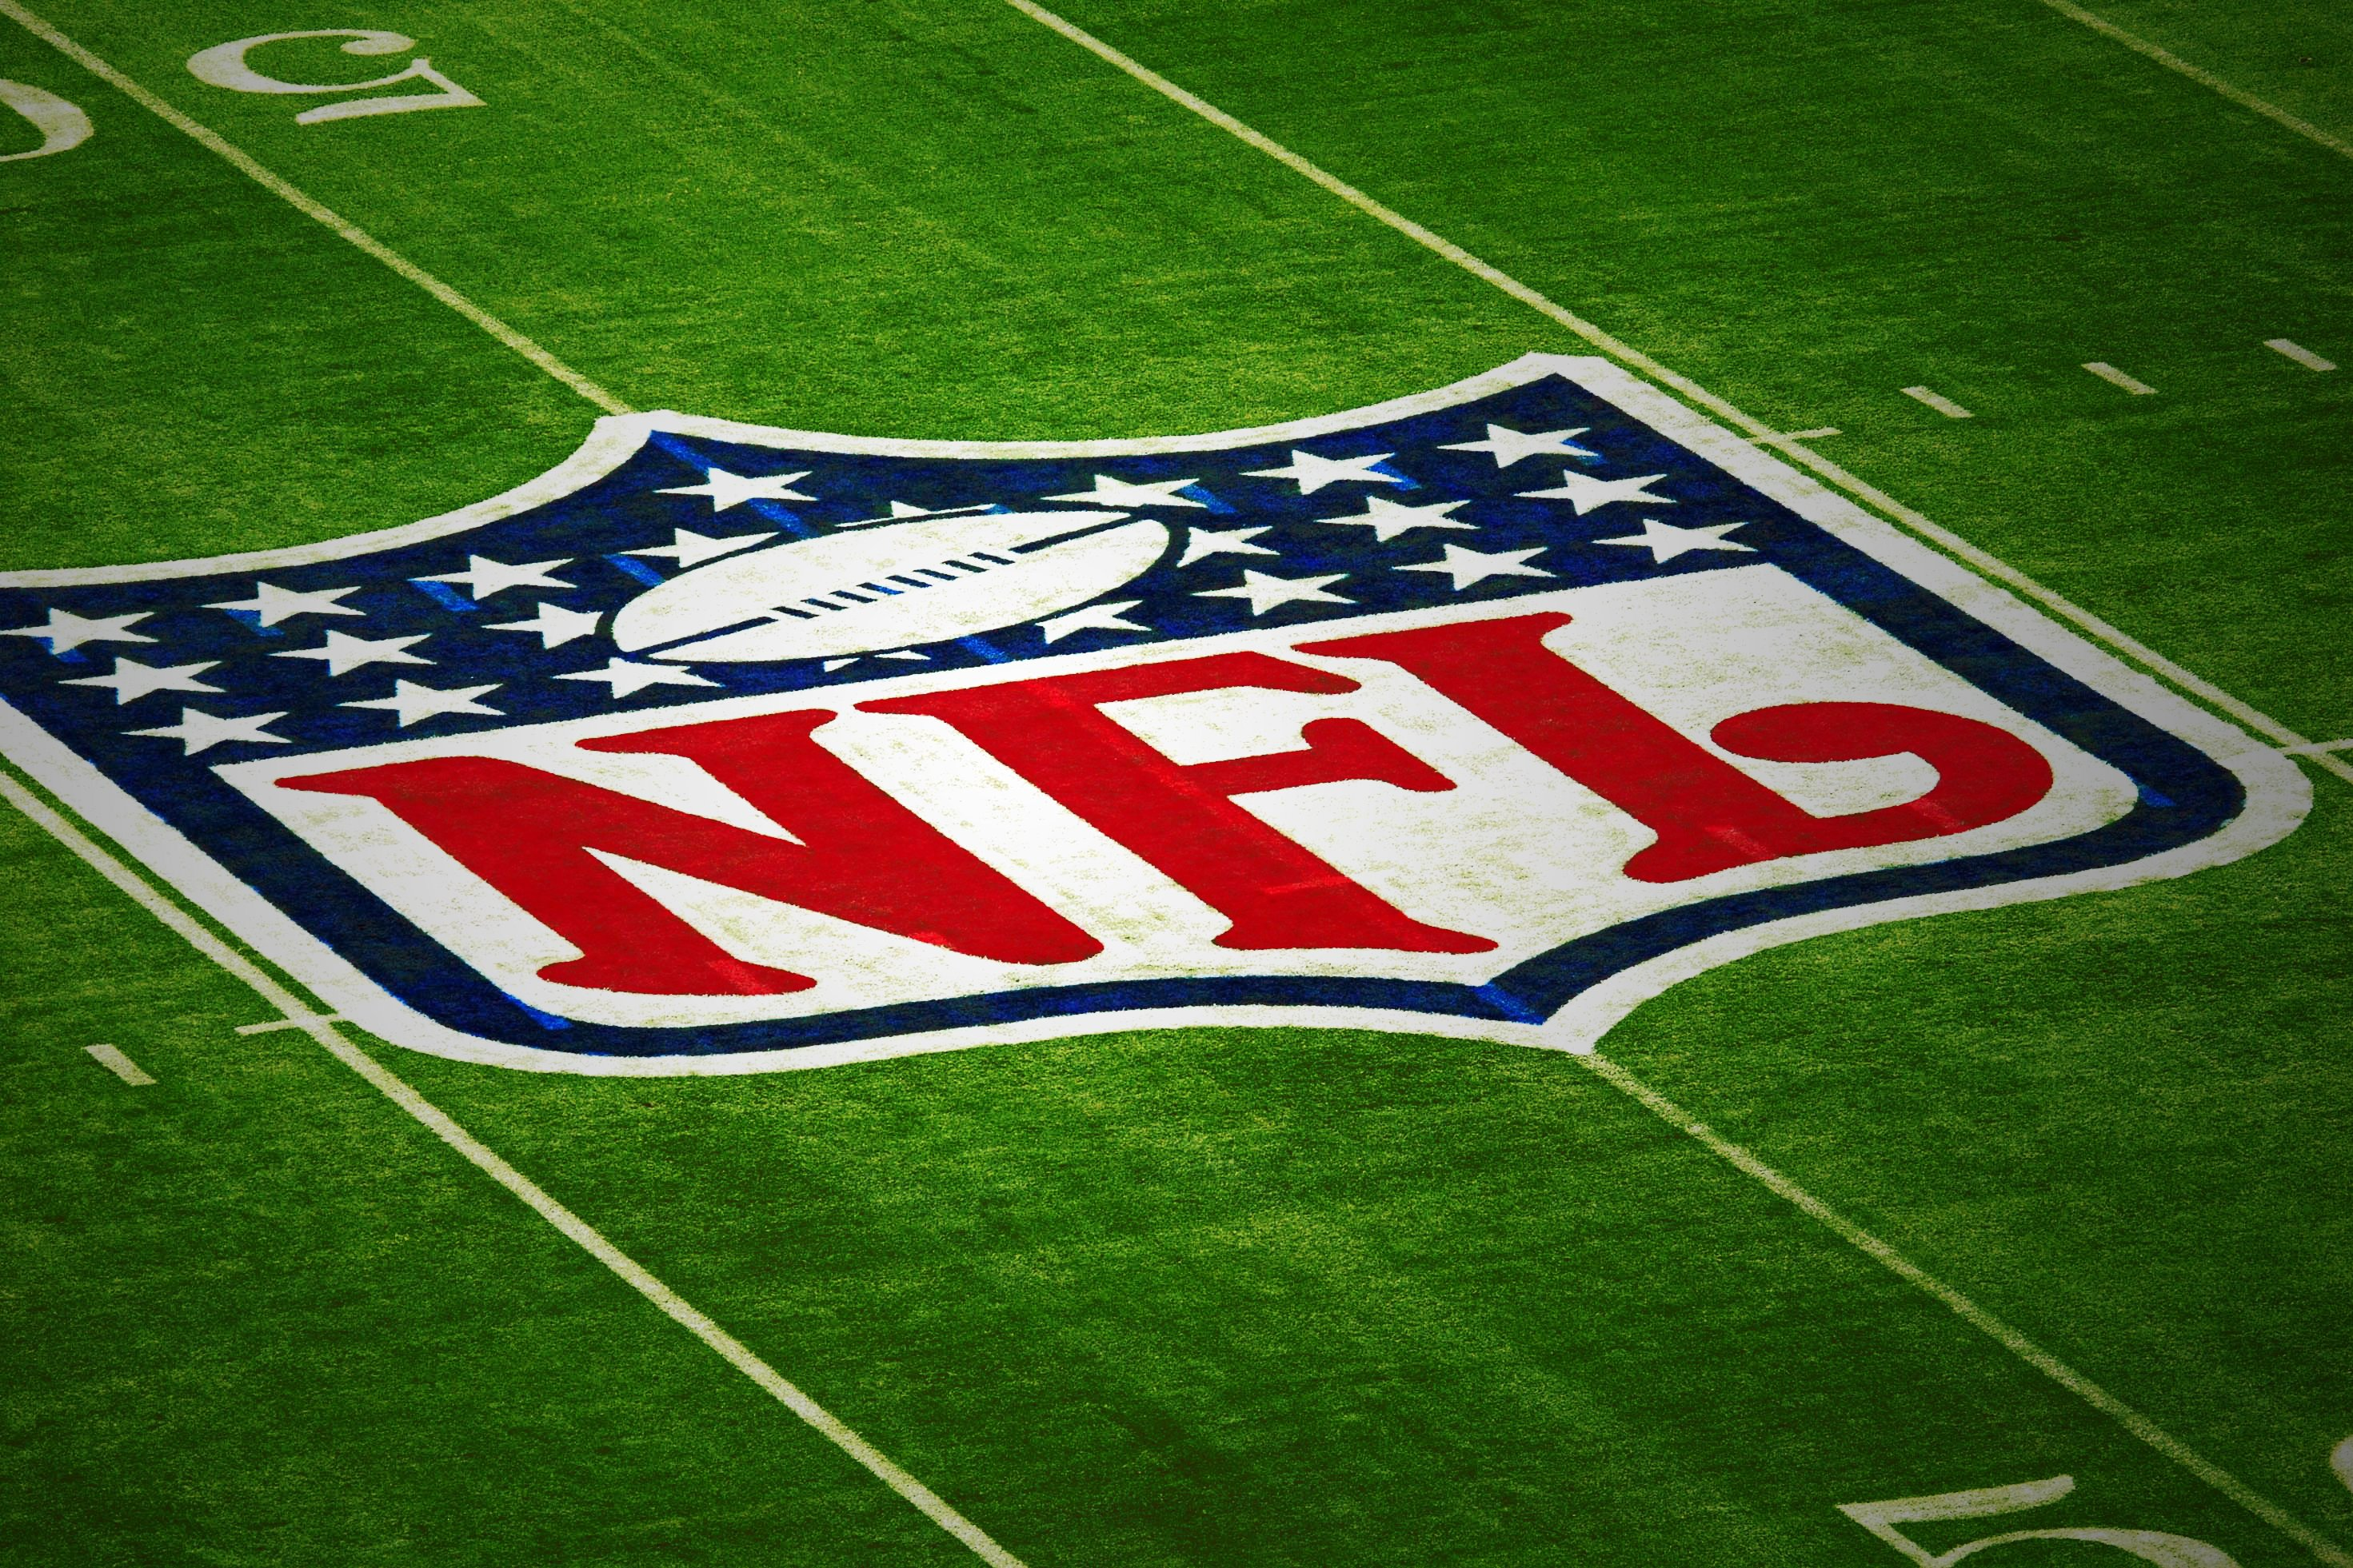 Sports Media Brief NFL CBA collective bargaining agreement rights deals ABC ESPN NBC Fox CBS FAANG XFL Nielsen ratings